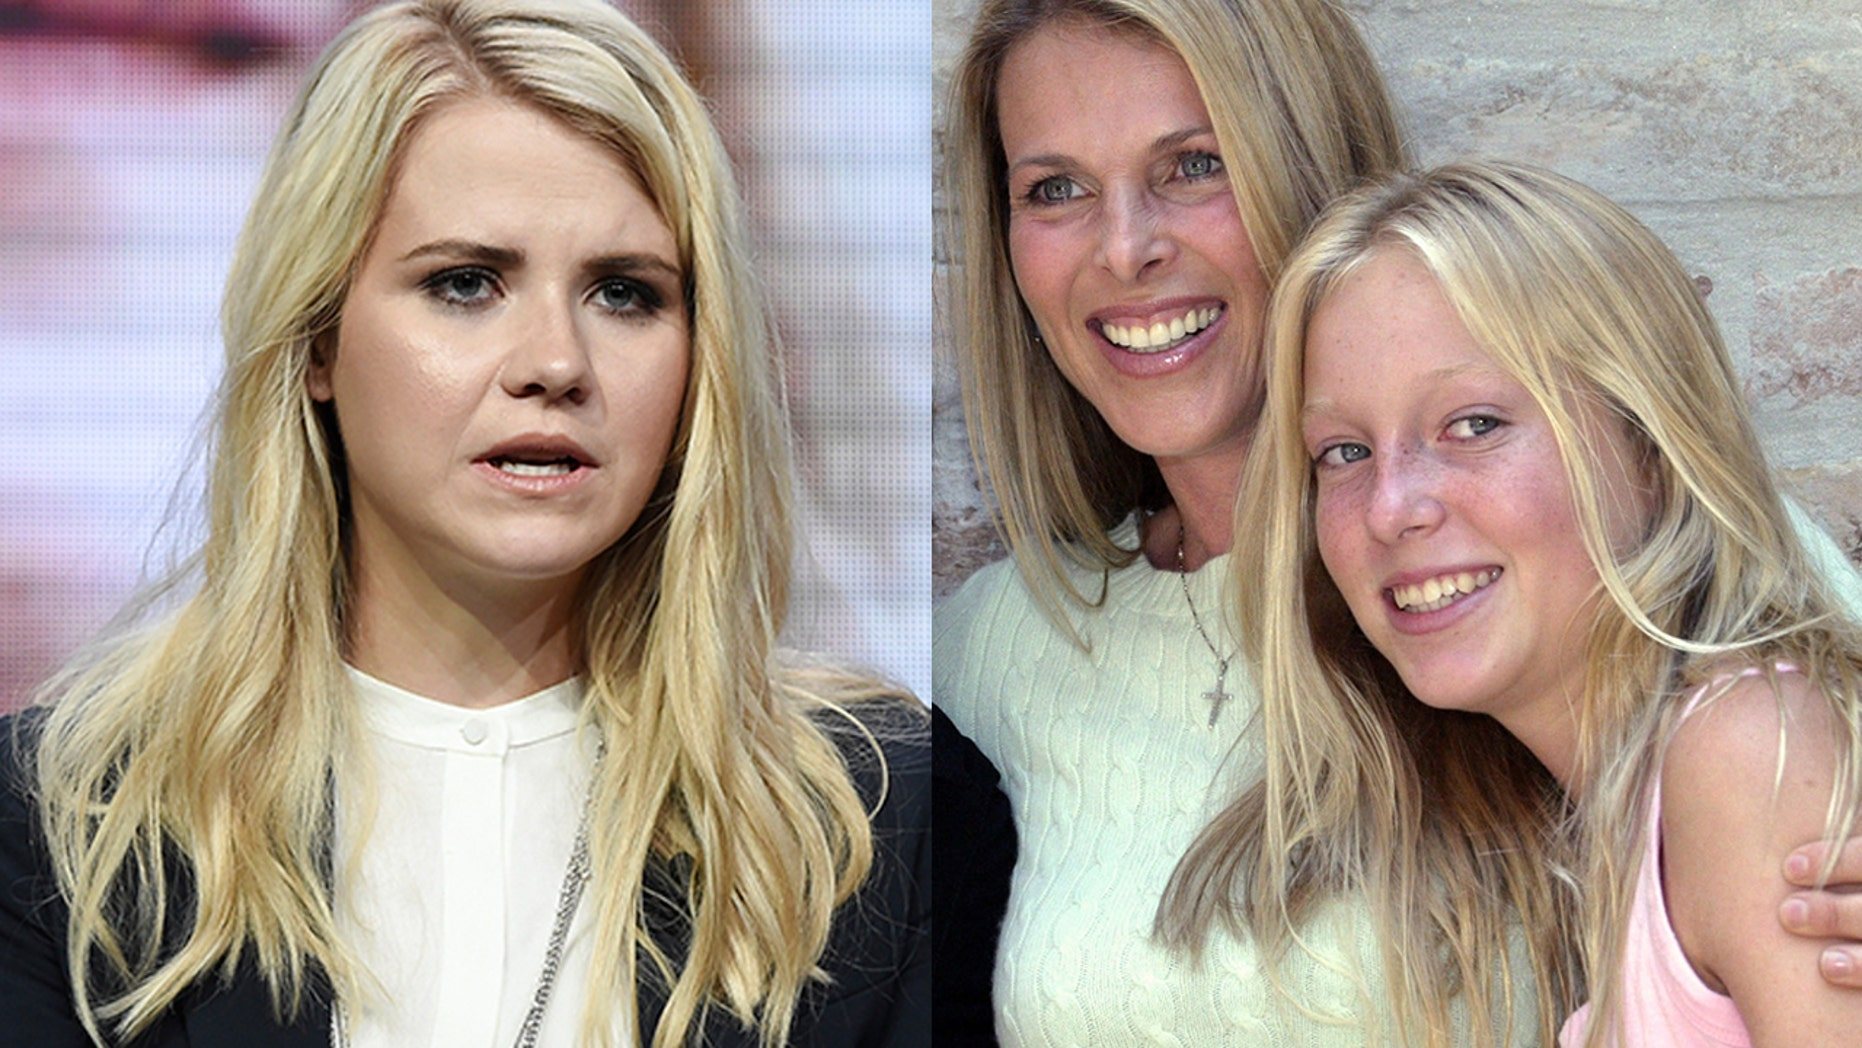 Elizabeth Smart reportedly tried to save former 'Dynasty' star Catherine Oxenberg's daughter from the NXIVM sex cult.